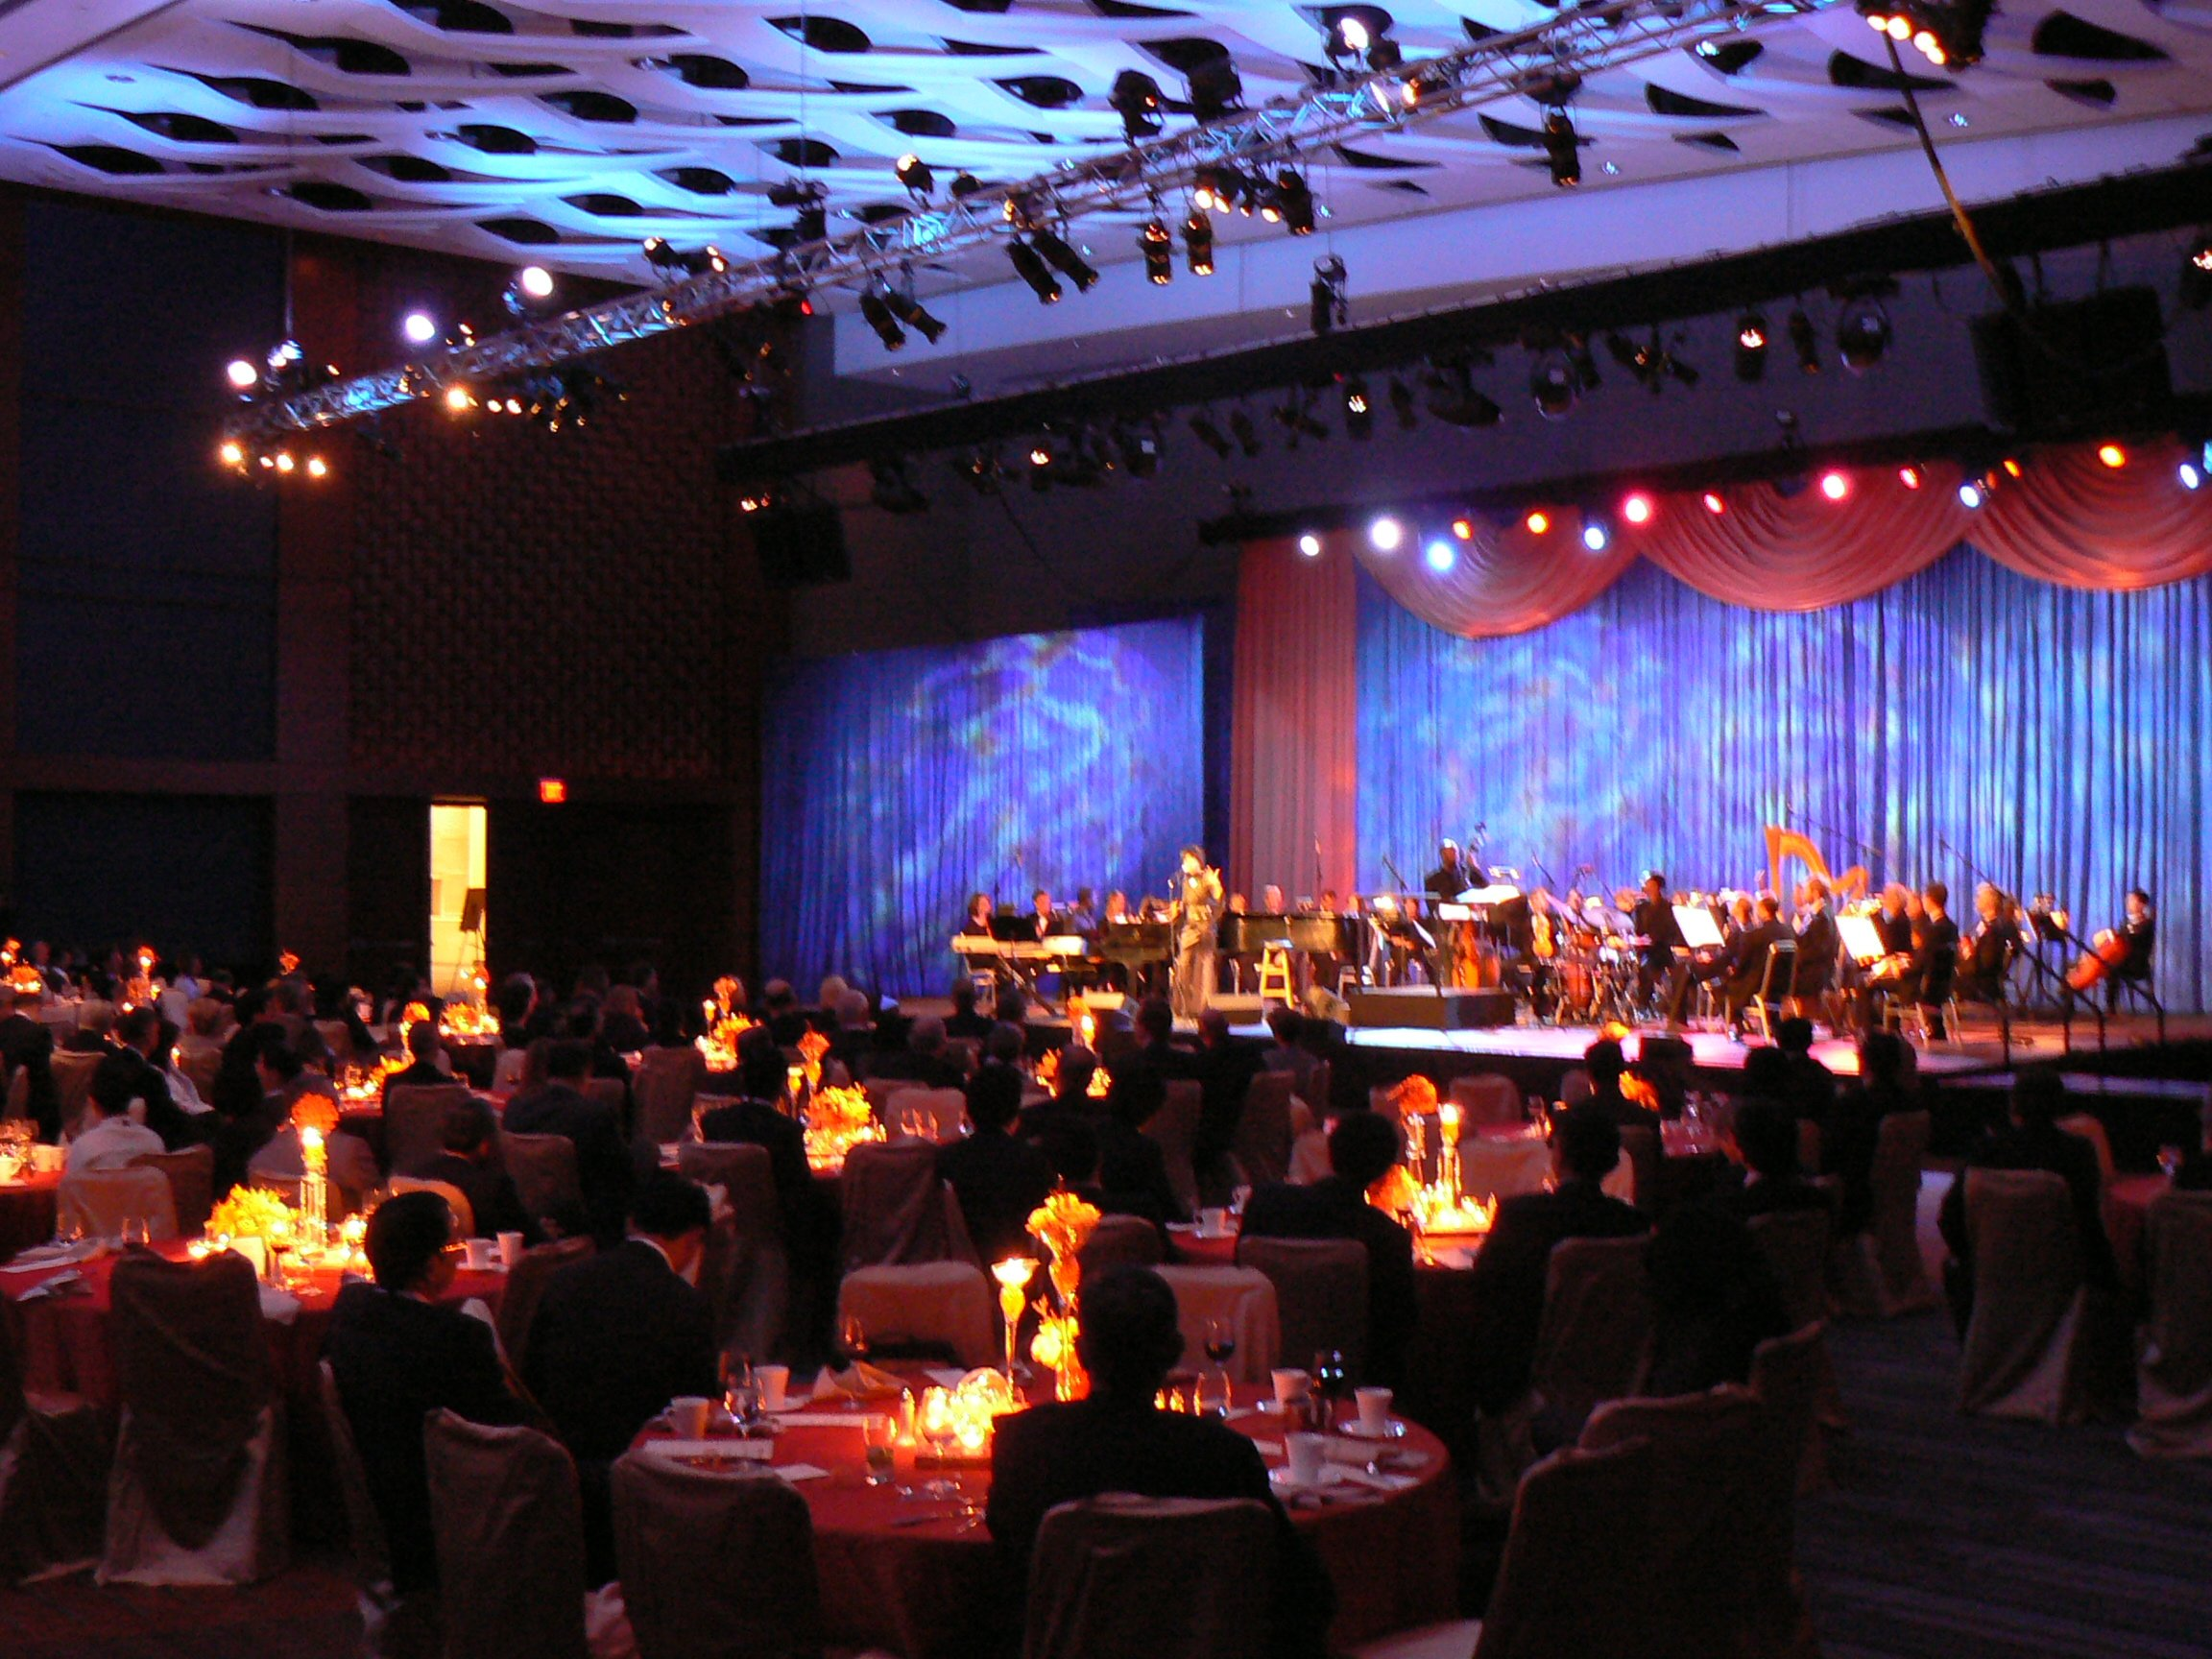 Convention Center Ballroom Transformed into Banquet and Stage